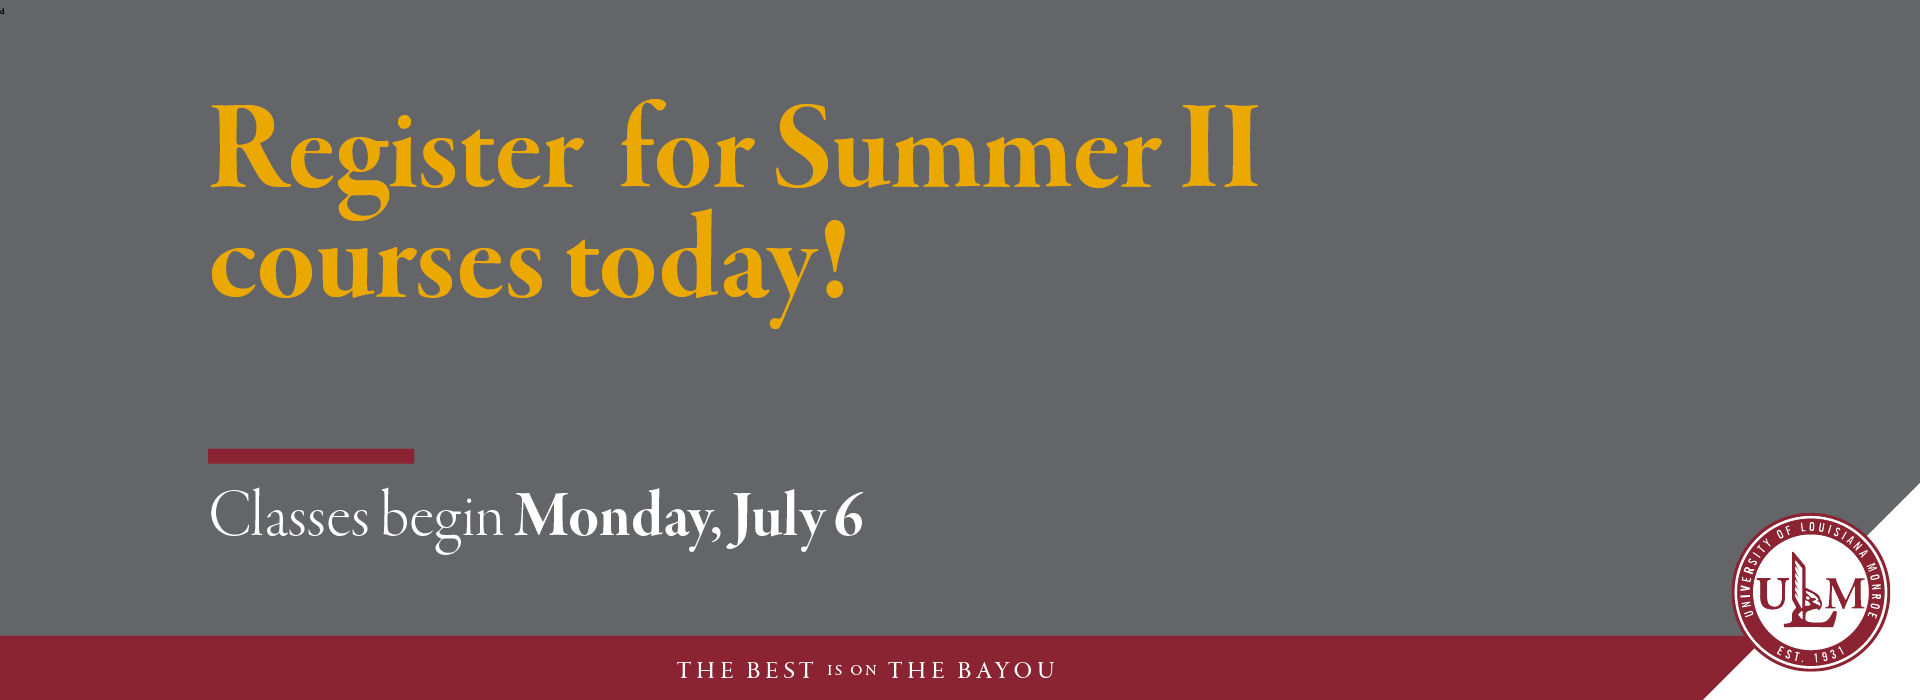 Register for Summer II courses today!